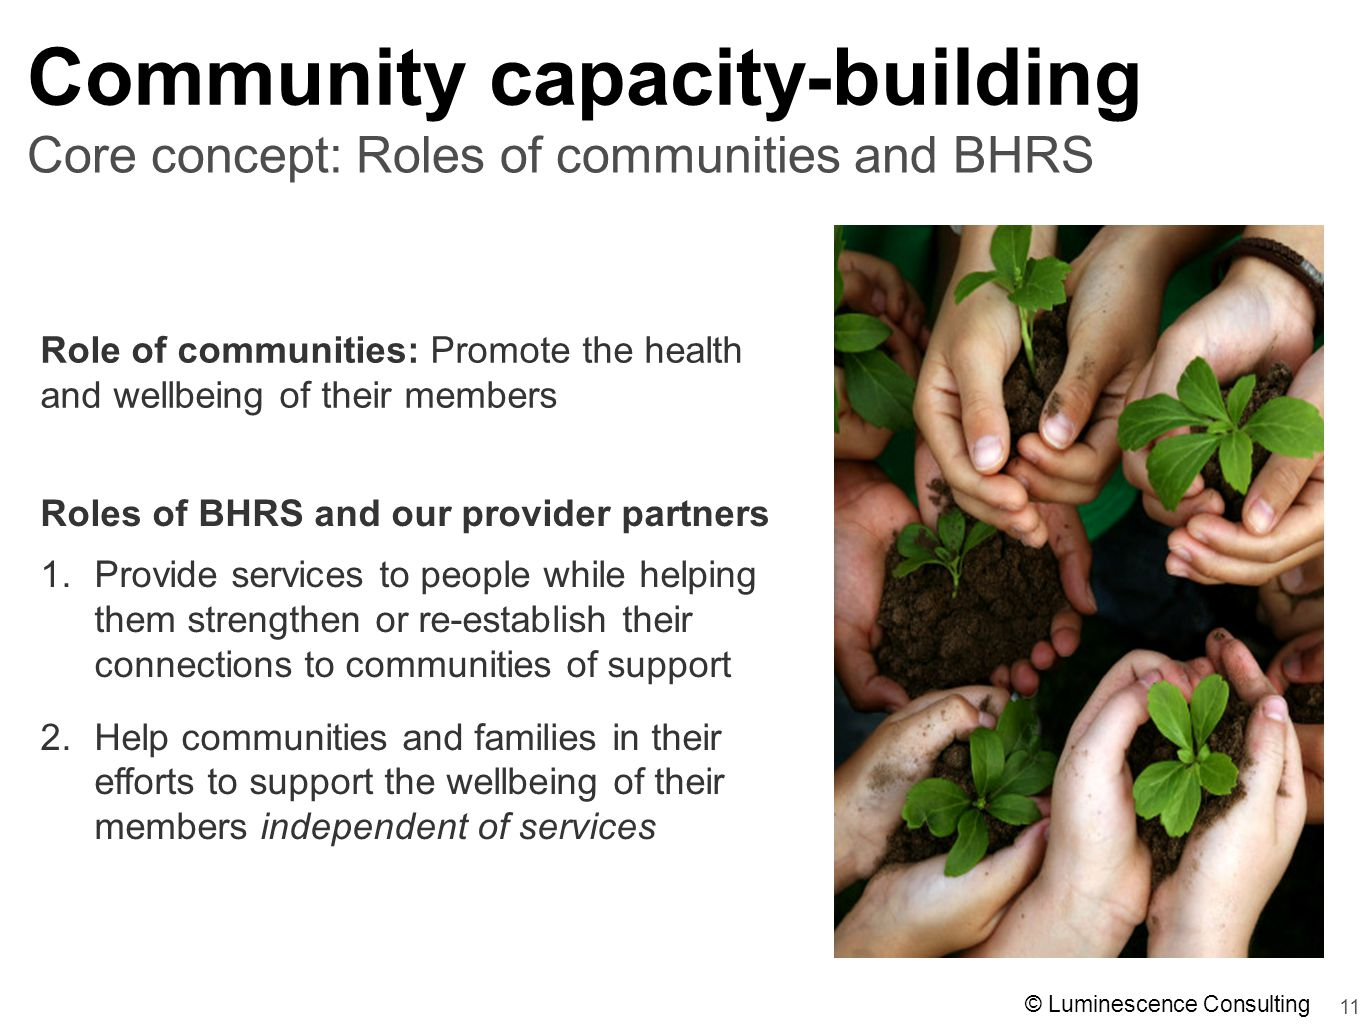 11 Core concept: Roles of communities and BHRS Community capacity-building Roles of BHRS and our provider partners 1.Provide services to people while helping them strengthen or re-establish their connections to communities of support 2.Help communities and families in their efforts to support the wellbeing of their members independent of services Role of communities: Promote the health and wellbeing of their members © Luminescence Consulting